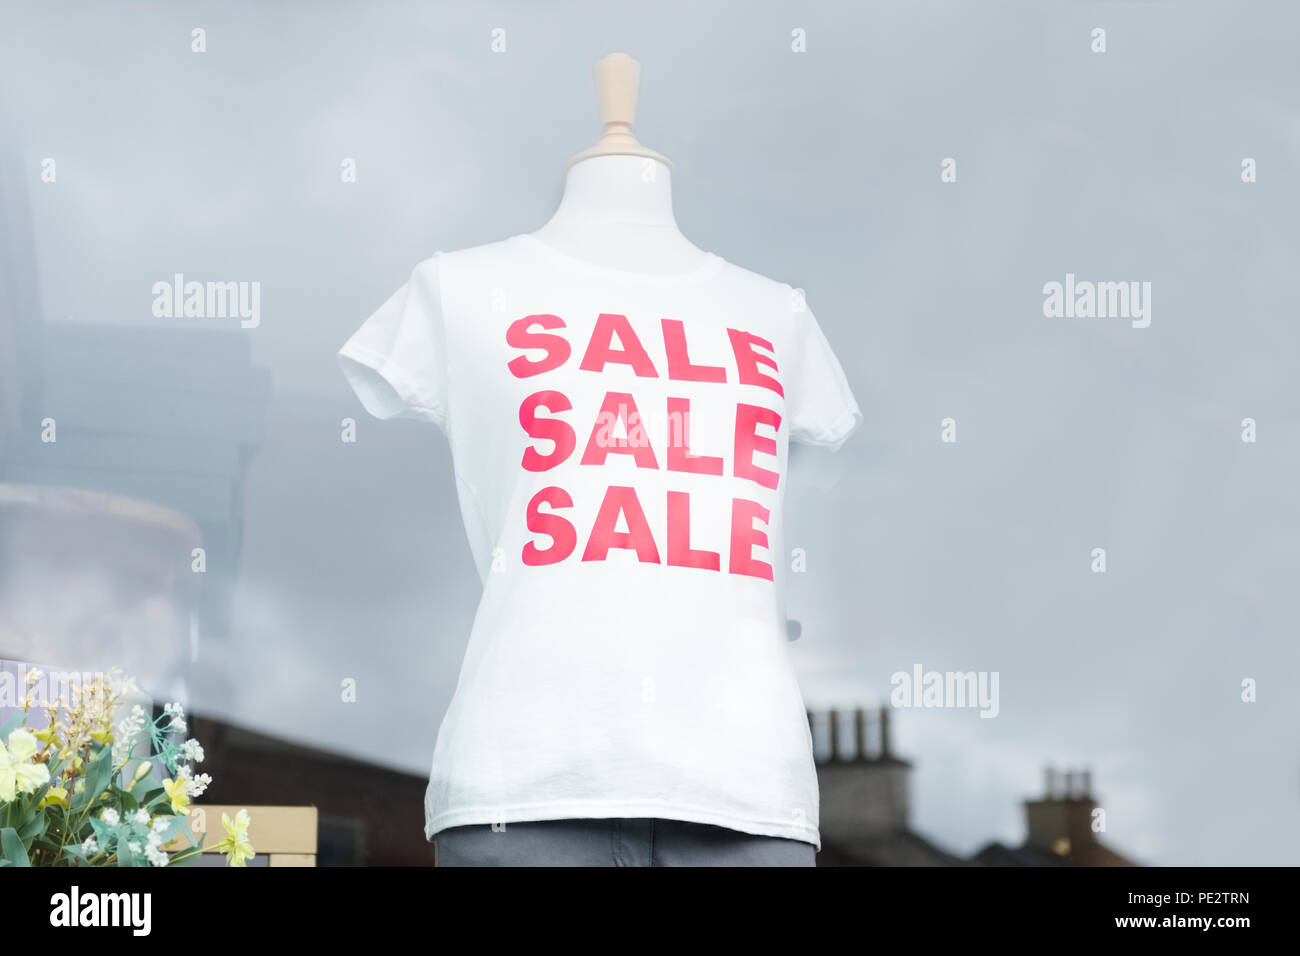 6a346ed6d Red sale white t-shirt on female mannequin in shop window Stock ...